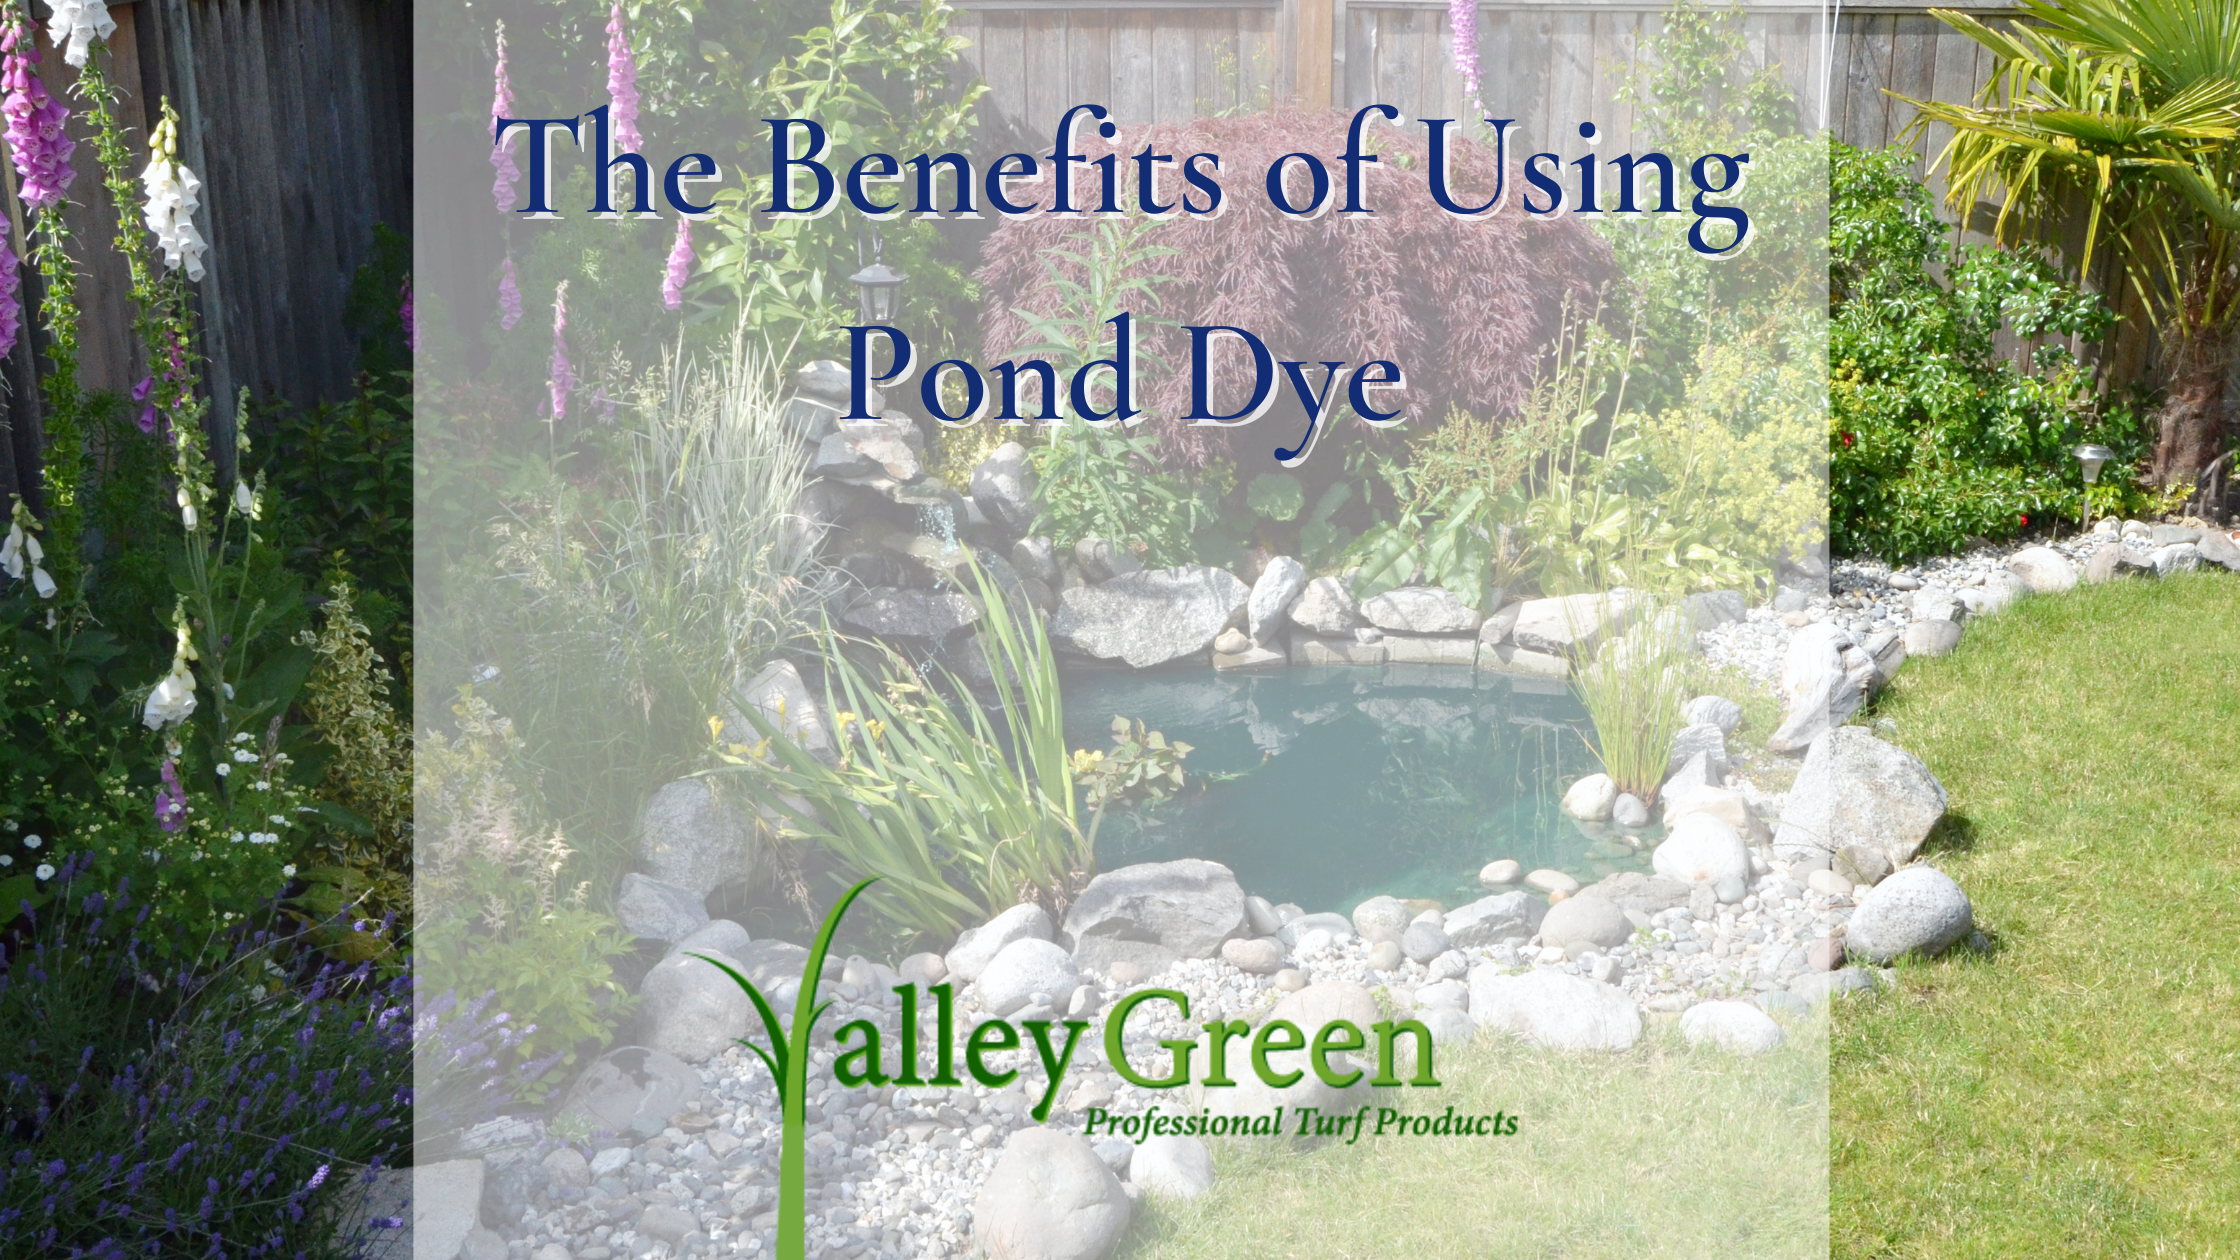 The Benefits of Using Pond Dye